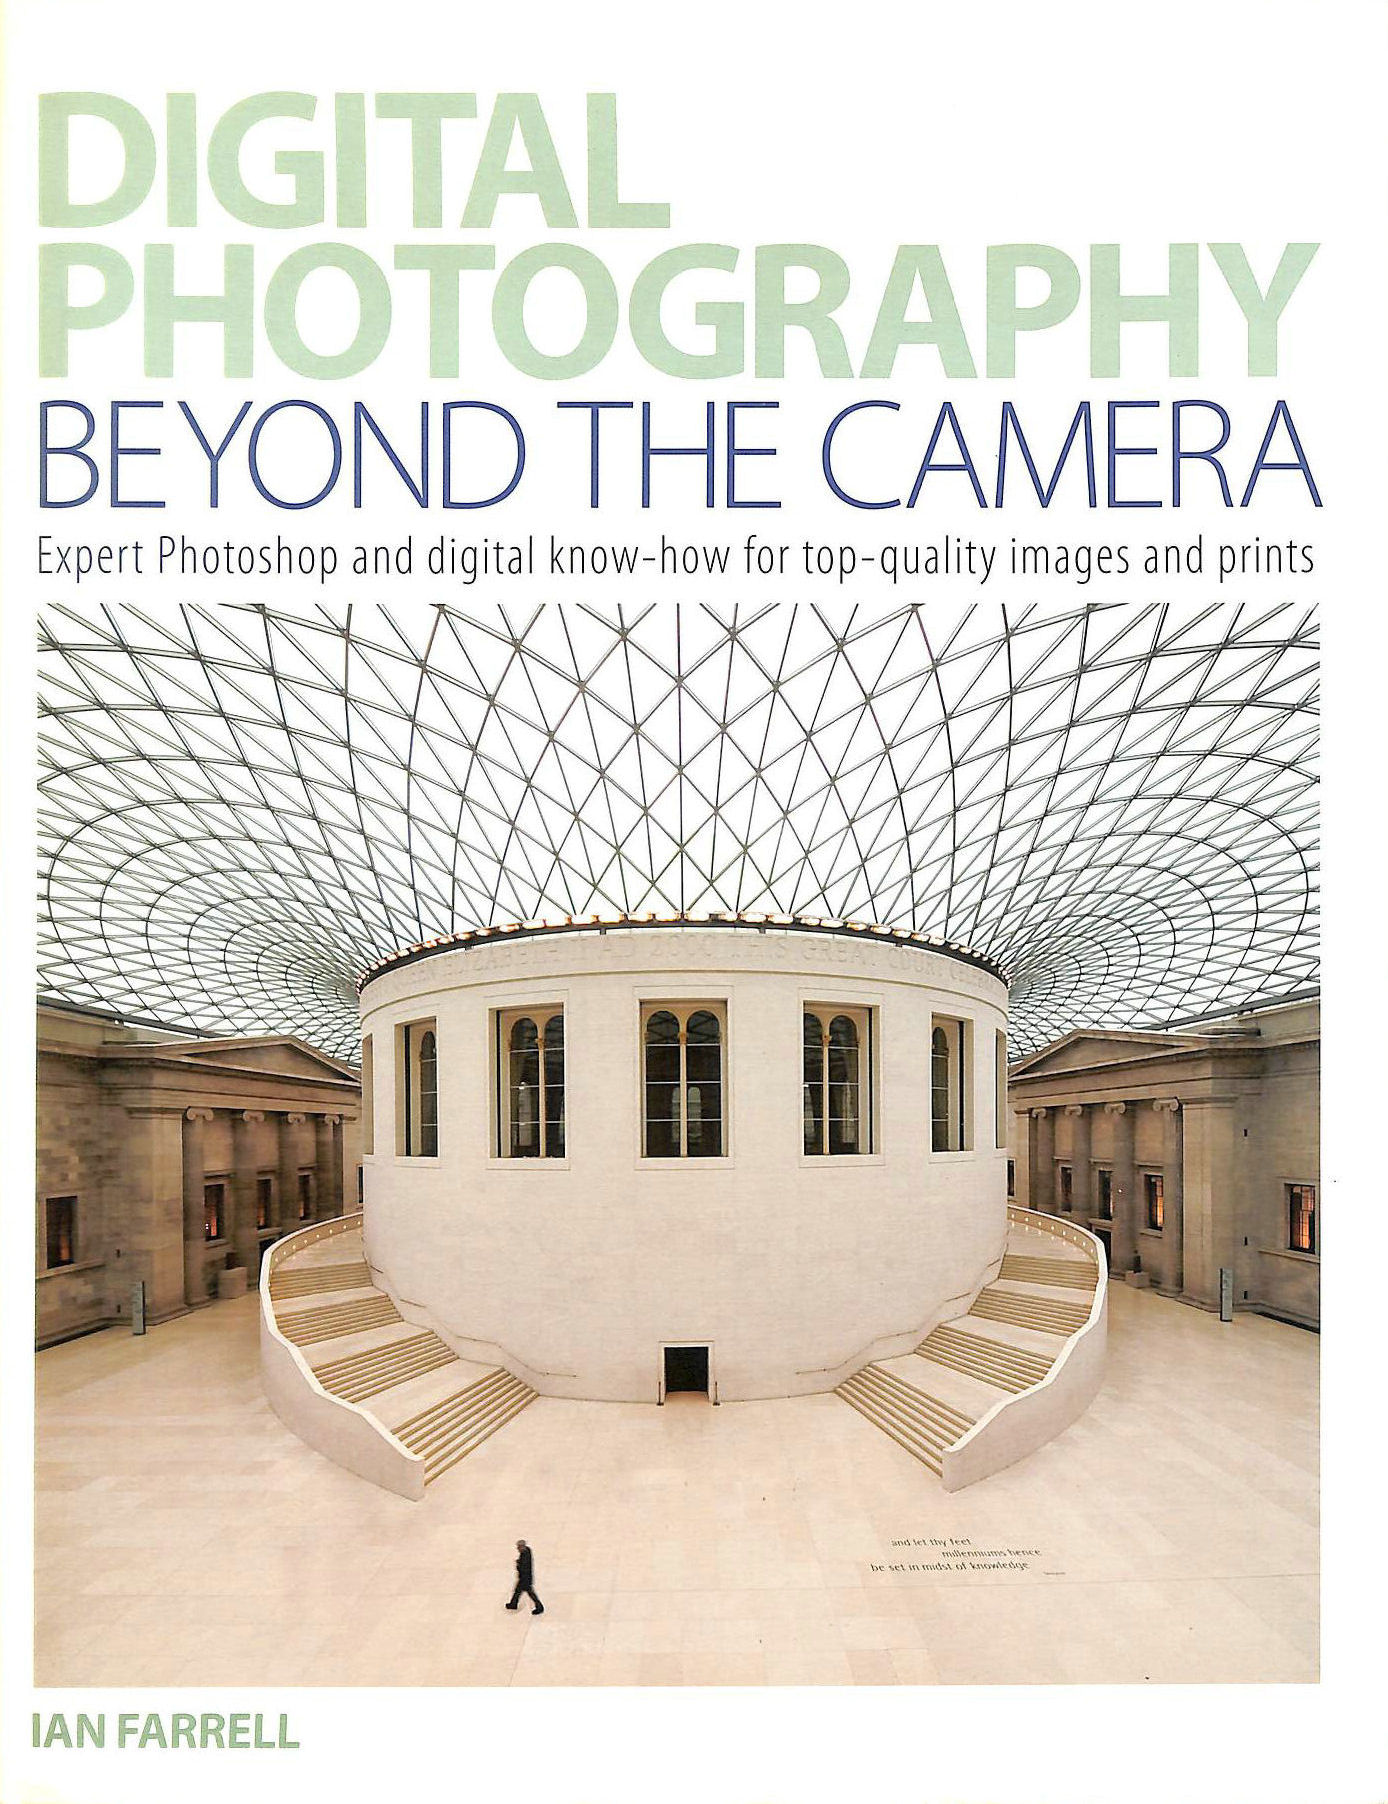 Image for Digital Photography Beyond the Camera: Expert Photoshop and Digital Know-how for Top-quality Images and Prints